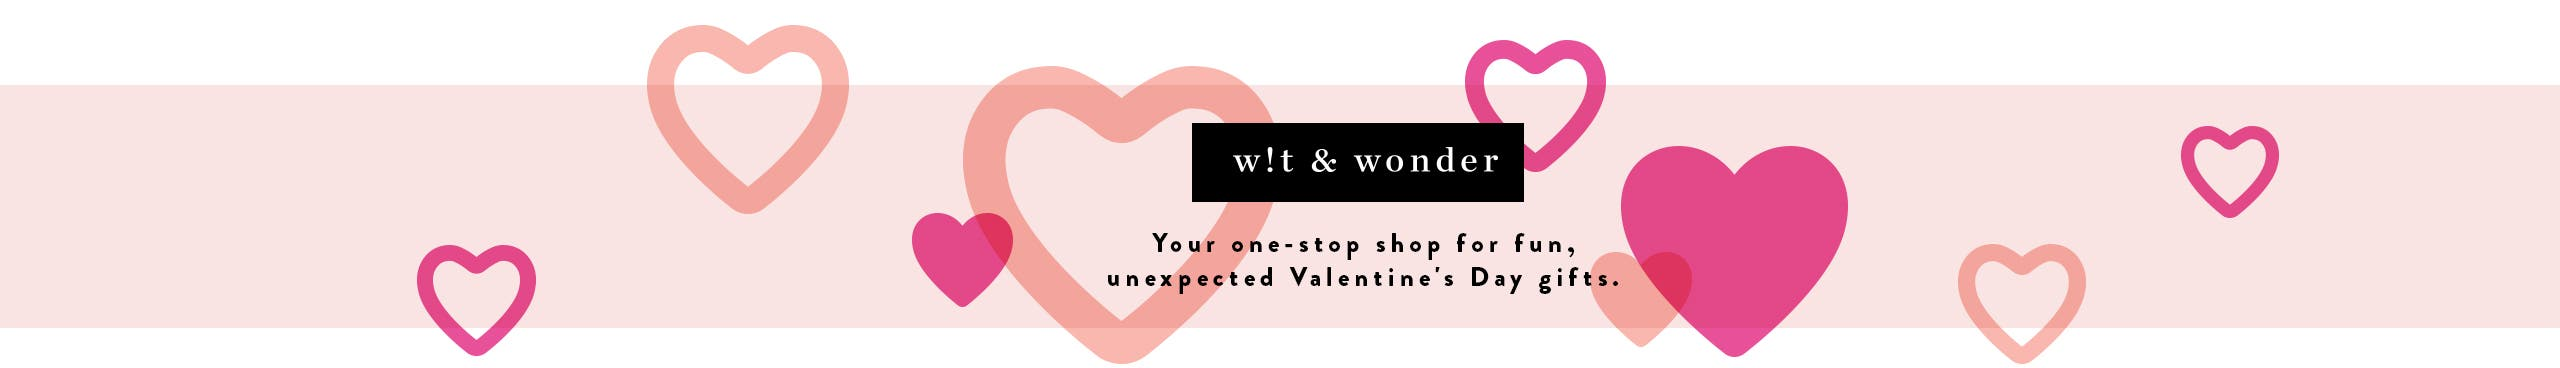 Wit and Wonder- your one-stop shop for fun, unexpected Valentine's Day gifts.